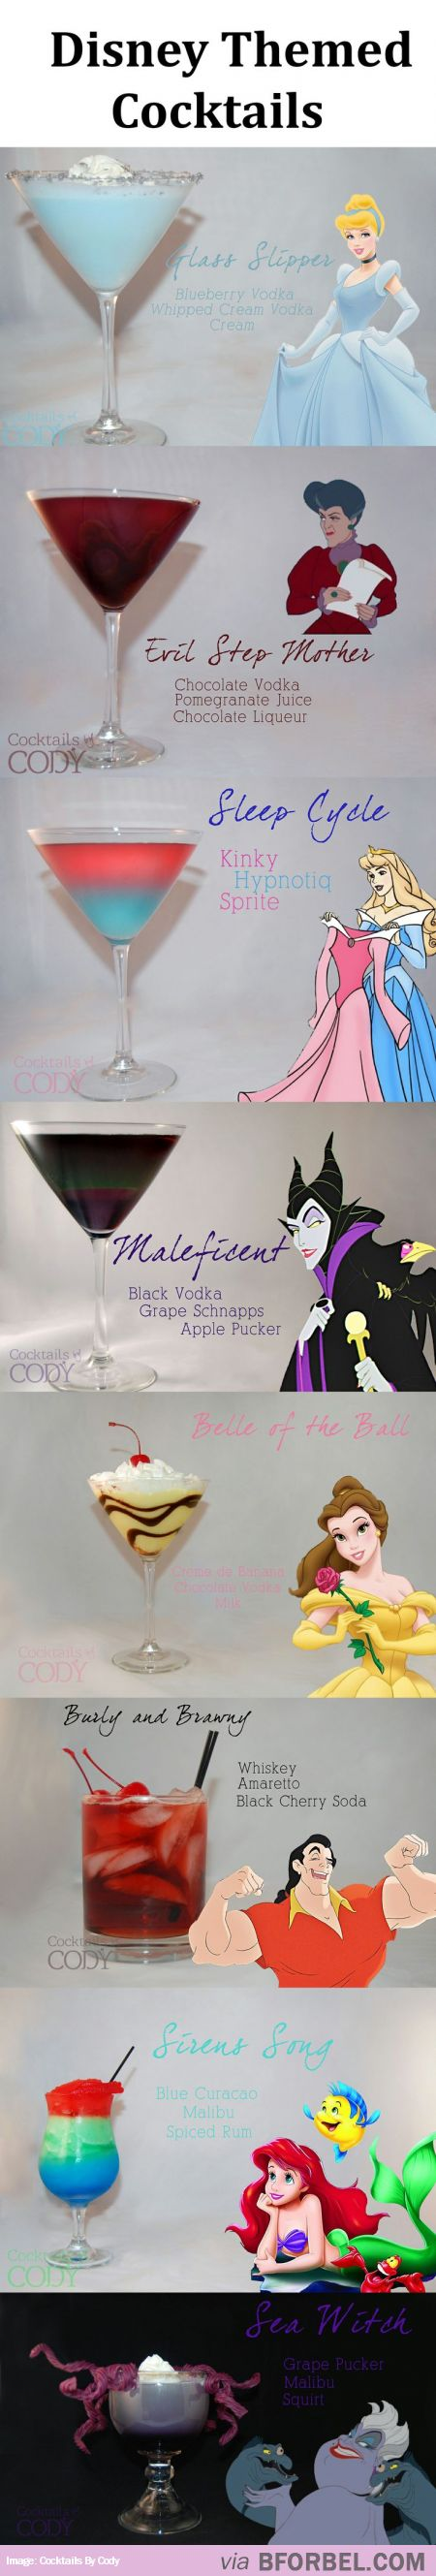 8 Disney Themed Cocktails… Magical And Delicious! @Ashley Walters Walters Walters Walters Walters Walters Lang thanks for sending this!! I need to try ALL of these :)